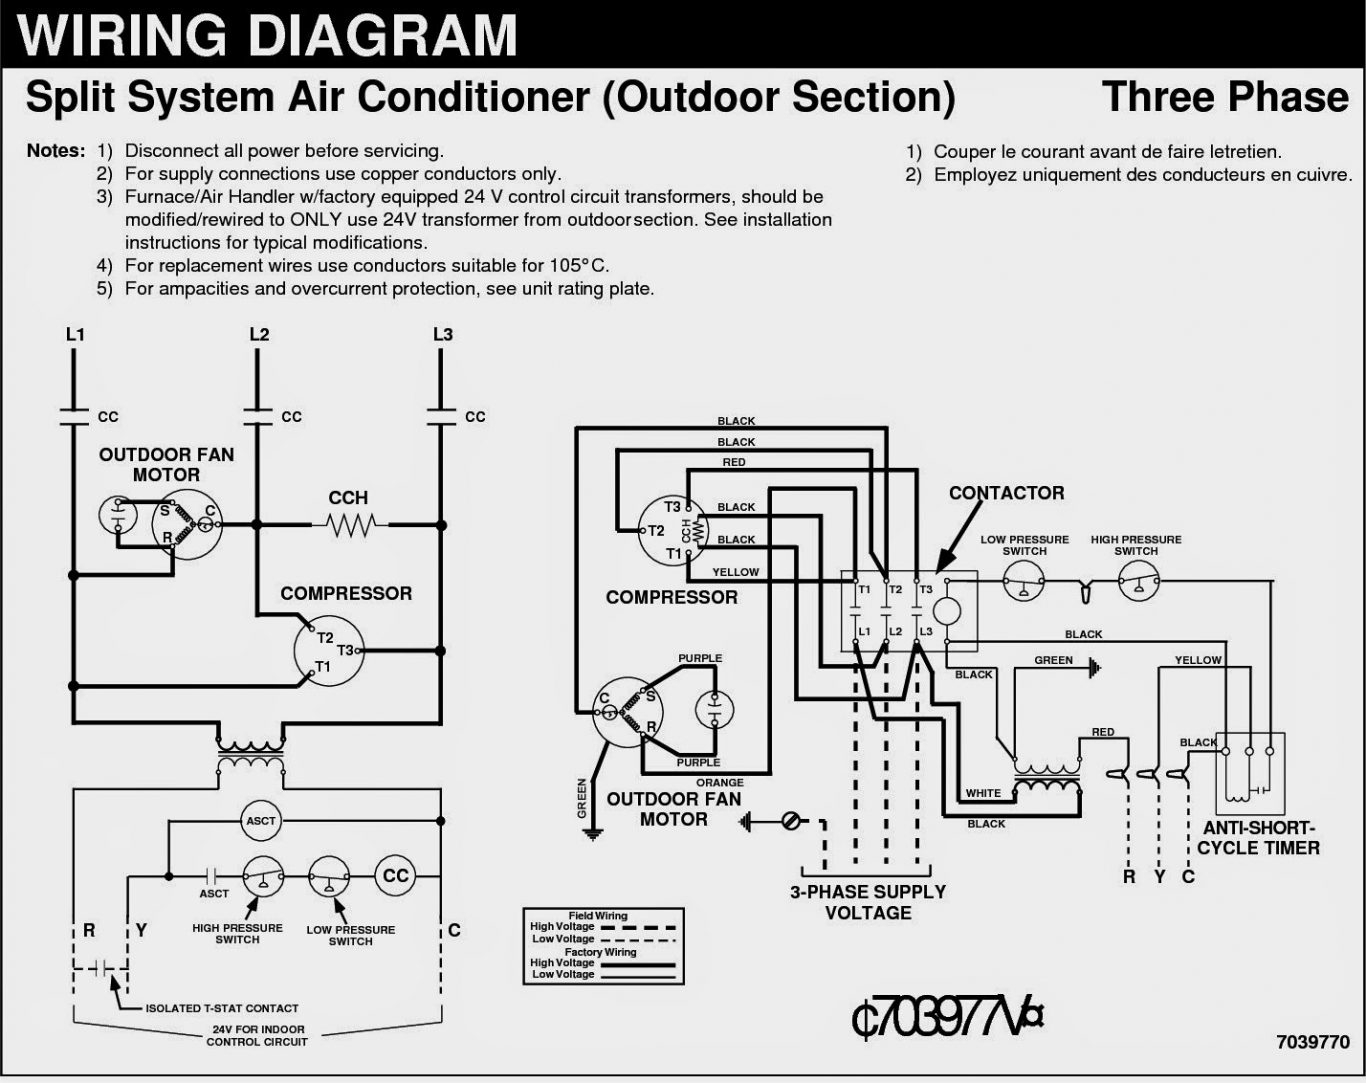 vita spa l200 wiring diagram gallery tiger river spa wiring schematic #3